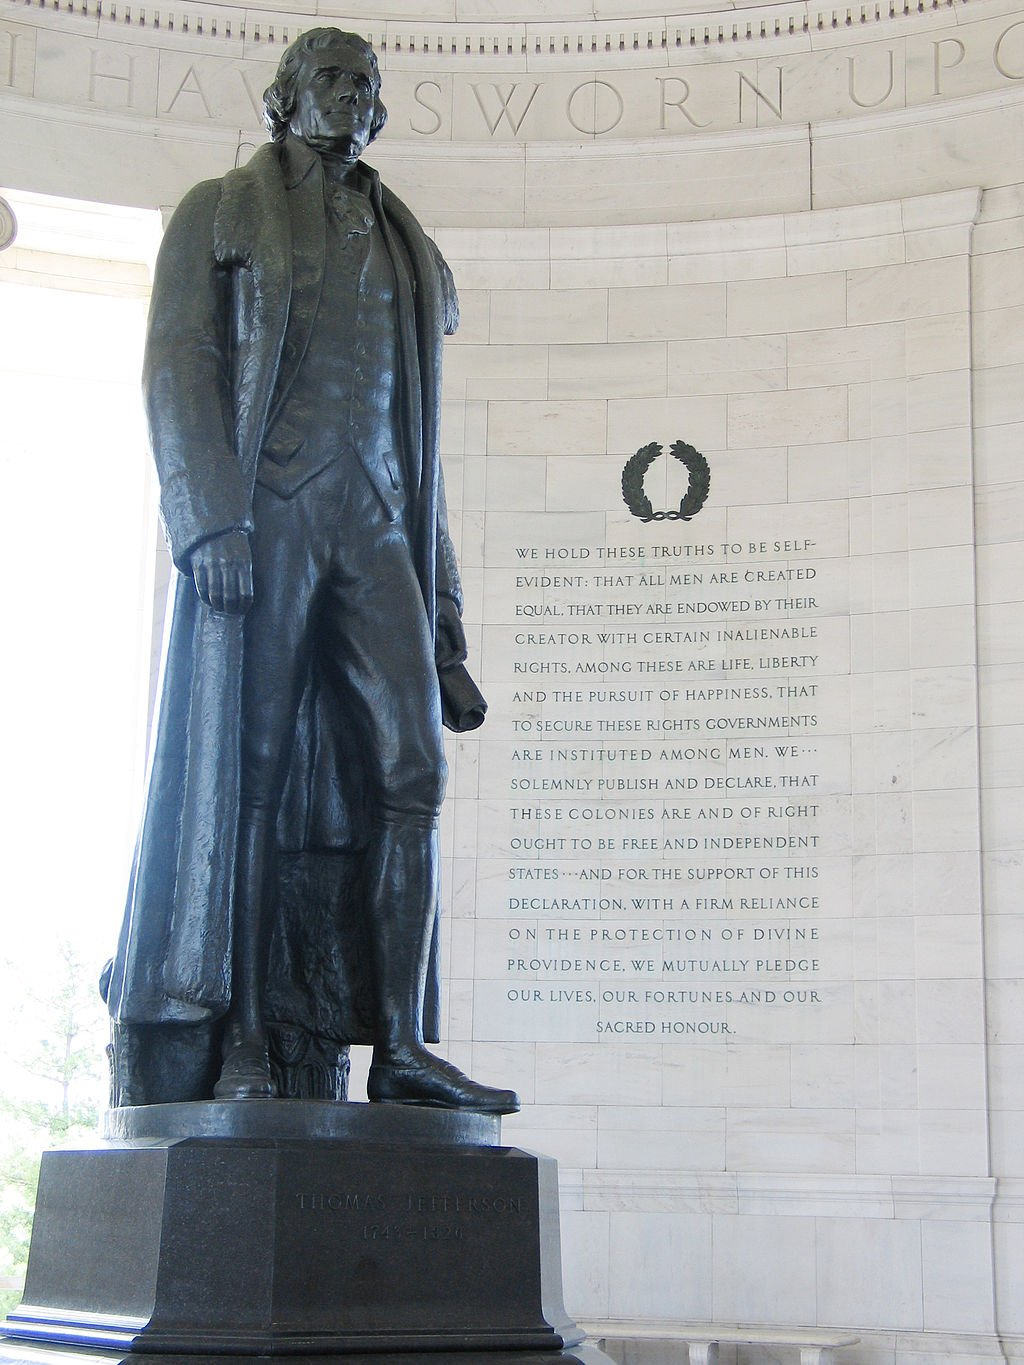 The 19-foot bronze statue of Thomas Jefferson stands by an engraving of the Declaration of Independence. Wikimedia Commons.